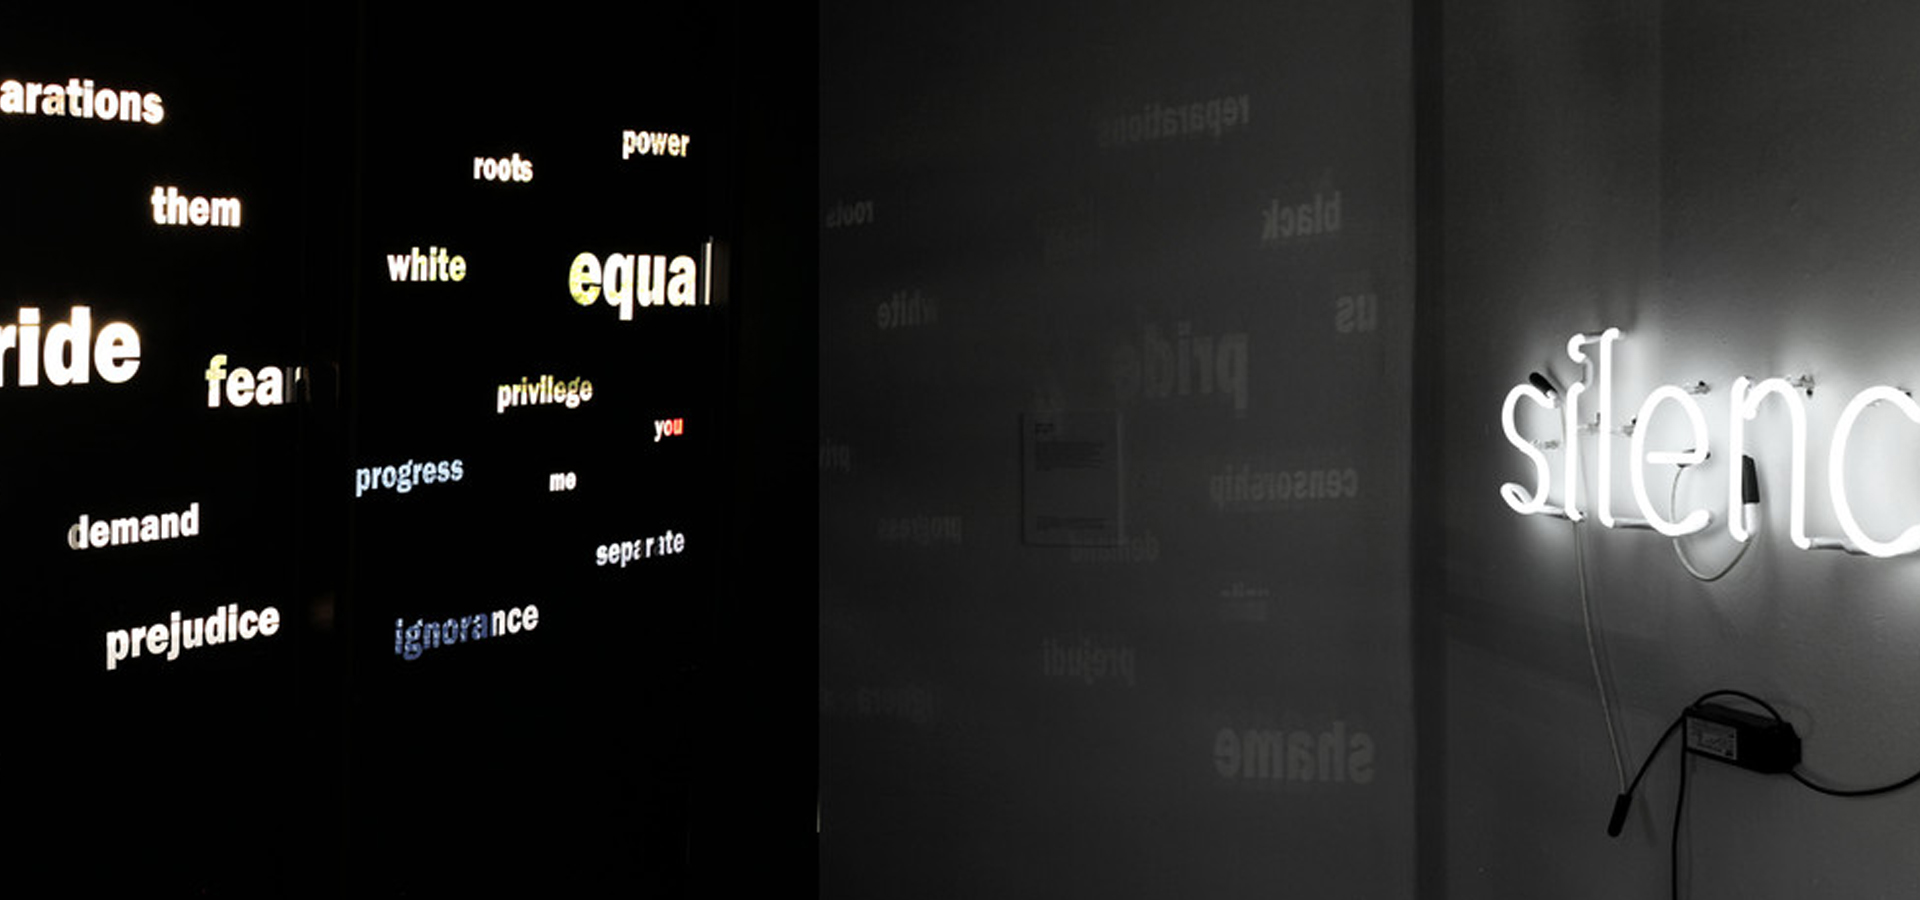 """A neon wall installation with """"silence"""" across from smaller words like """"equal"""" across from it."""